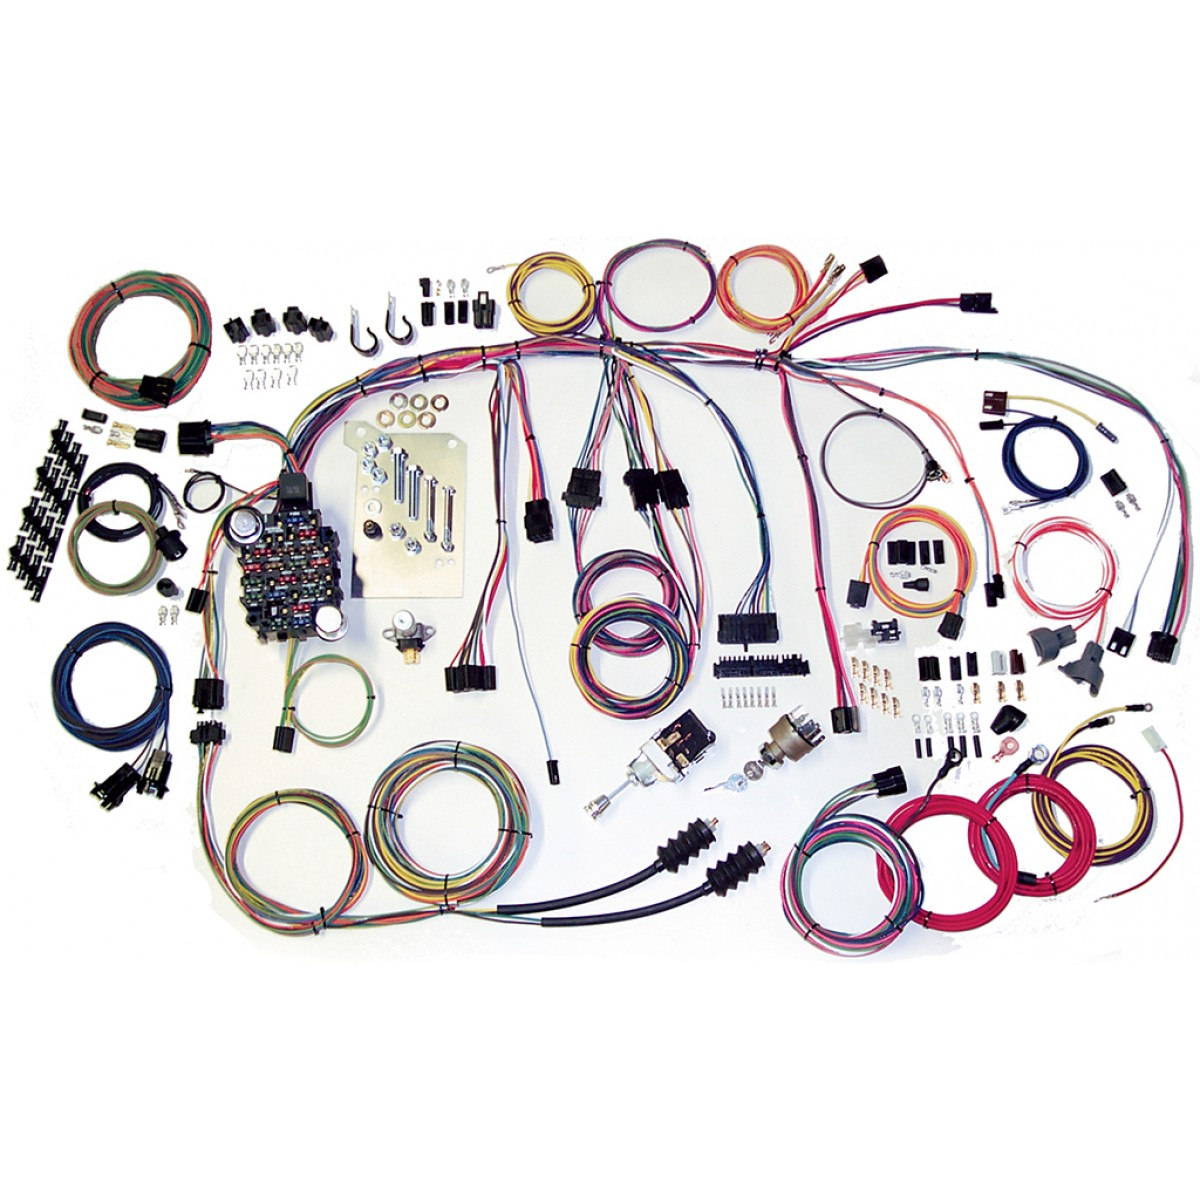 60 66 chevy truck wiring harness kit 1960 1966 chevy truck part 500560 chevy c10 c20 wiring harness chevy c10 wiring harness complete wiring harness kit 1960 1966 chevy c10 wiring harness at panicattacktreatment.co